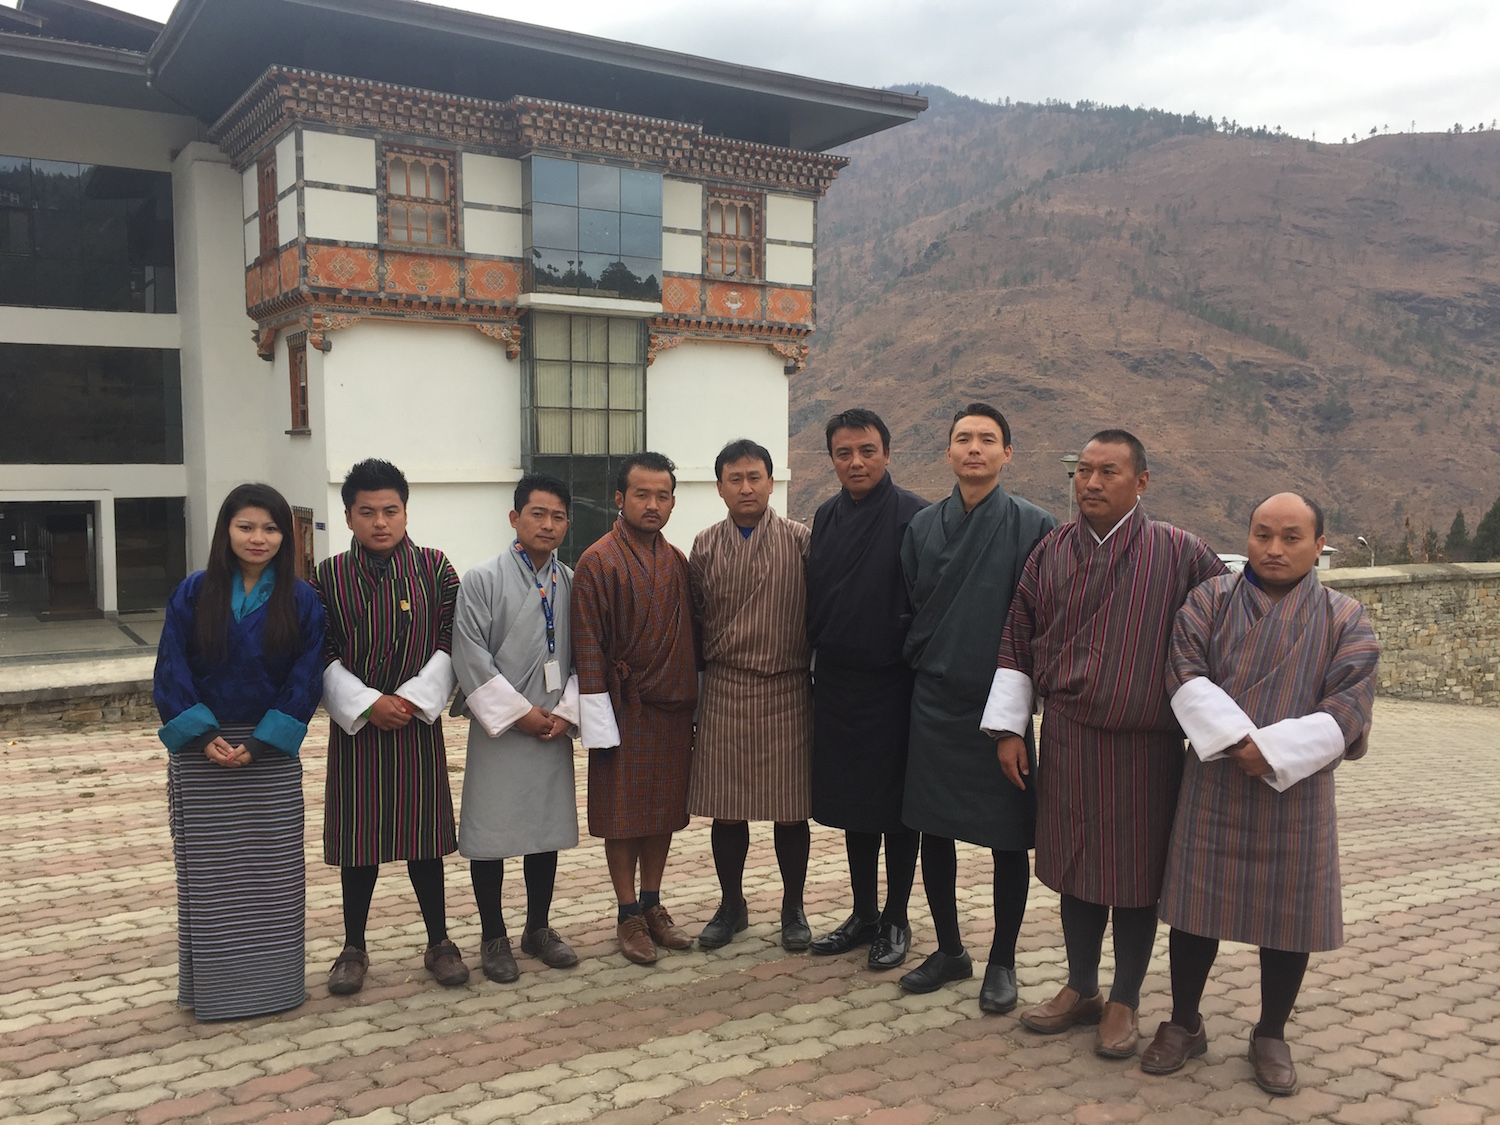 Newly established start-ups including NANO are becoming busier with the growing number of Internet users in Bhutan.